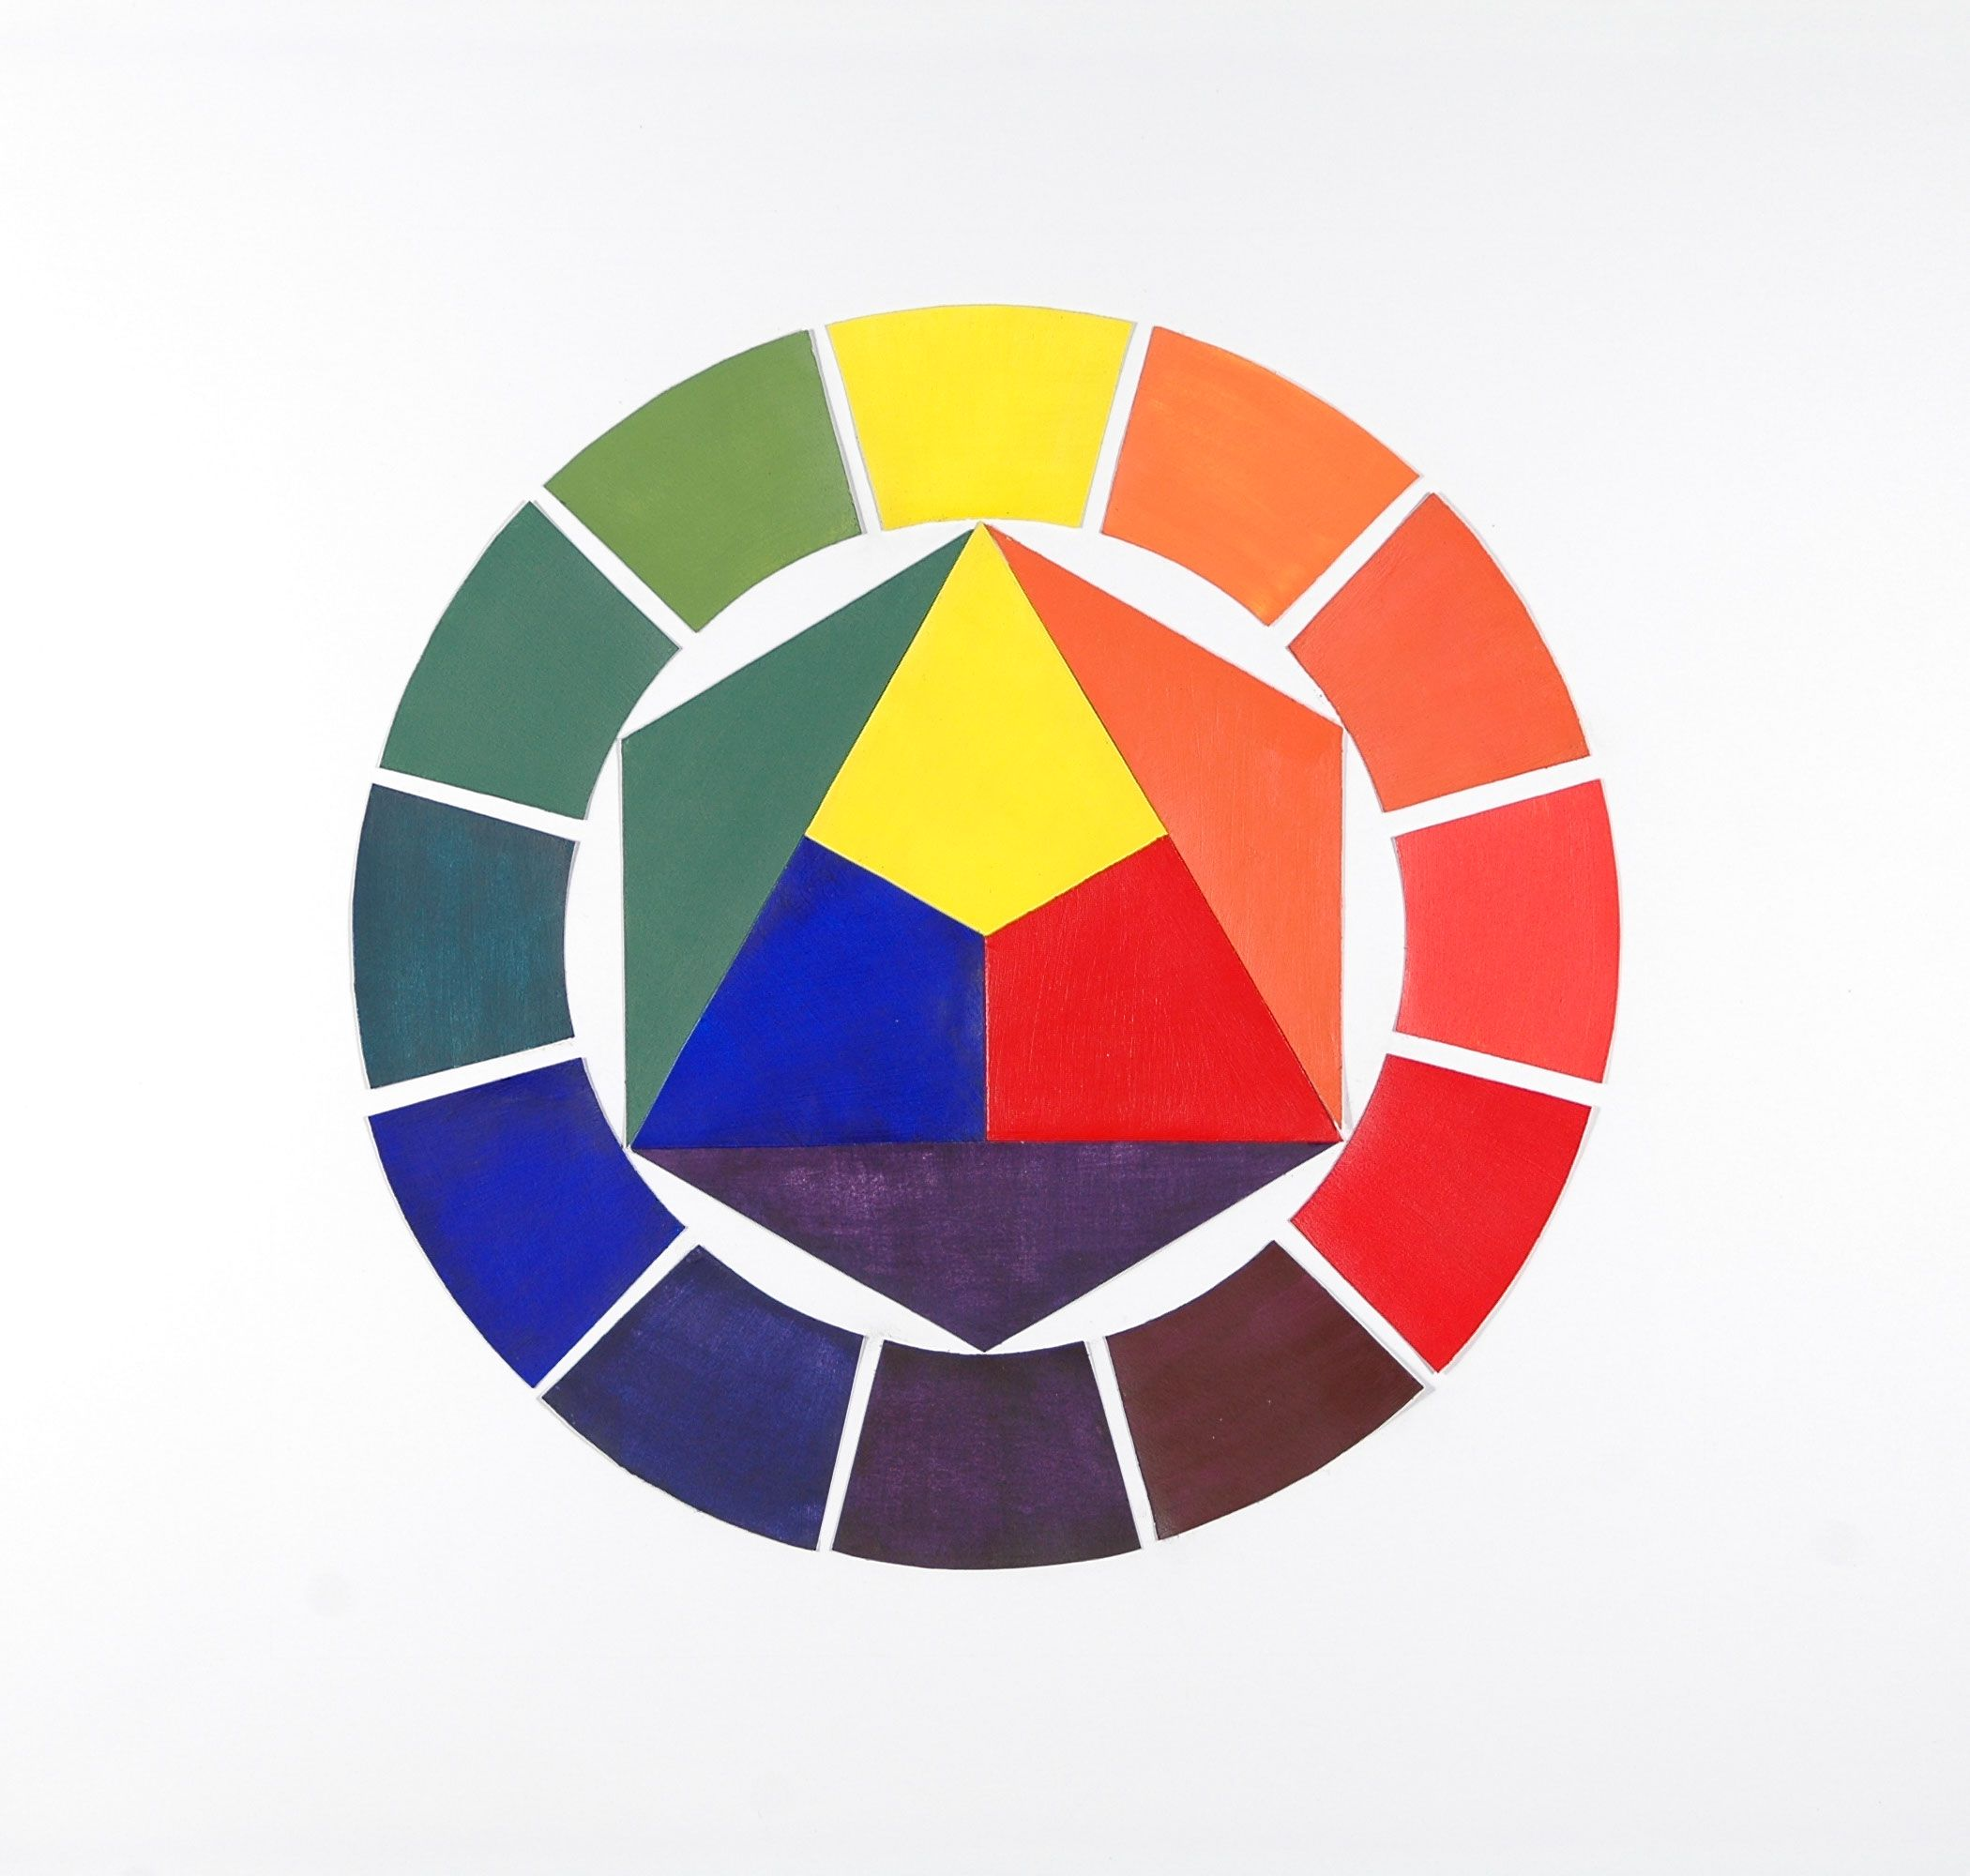 Color wheel art projects for kids - Color Wheel Project